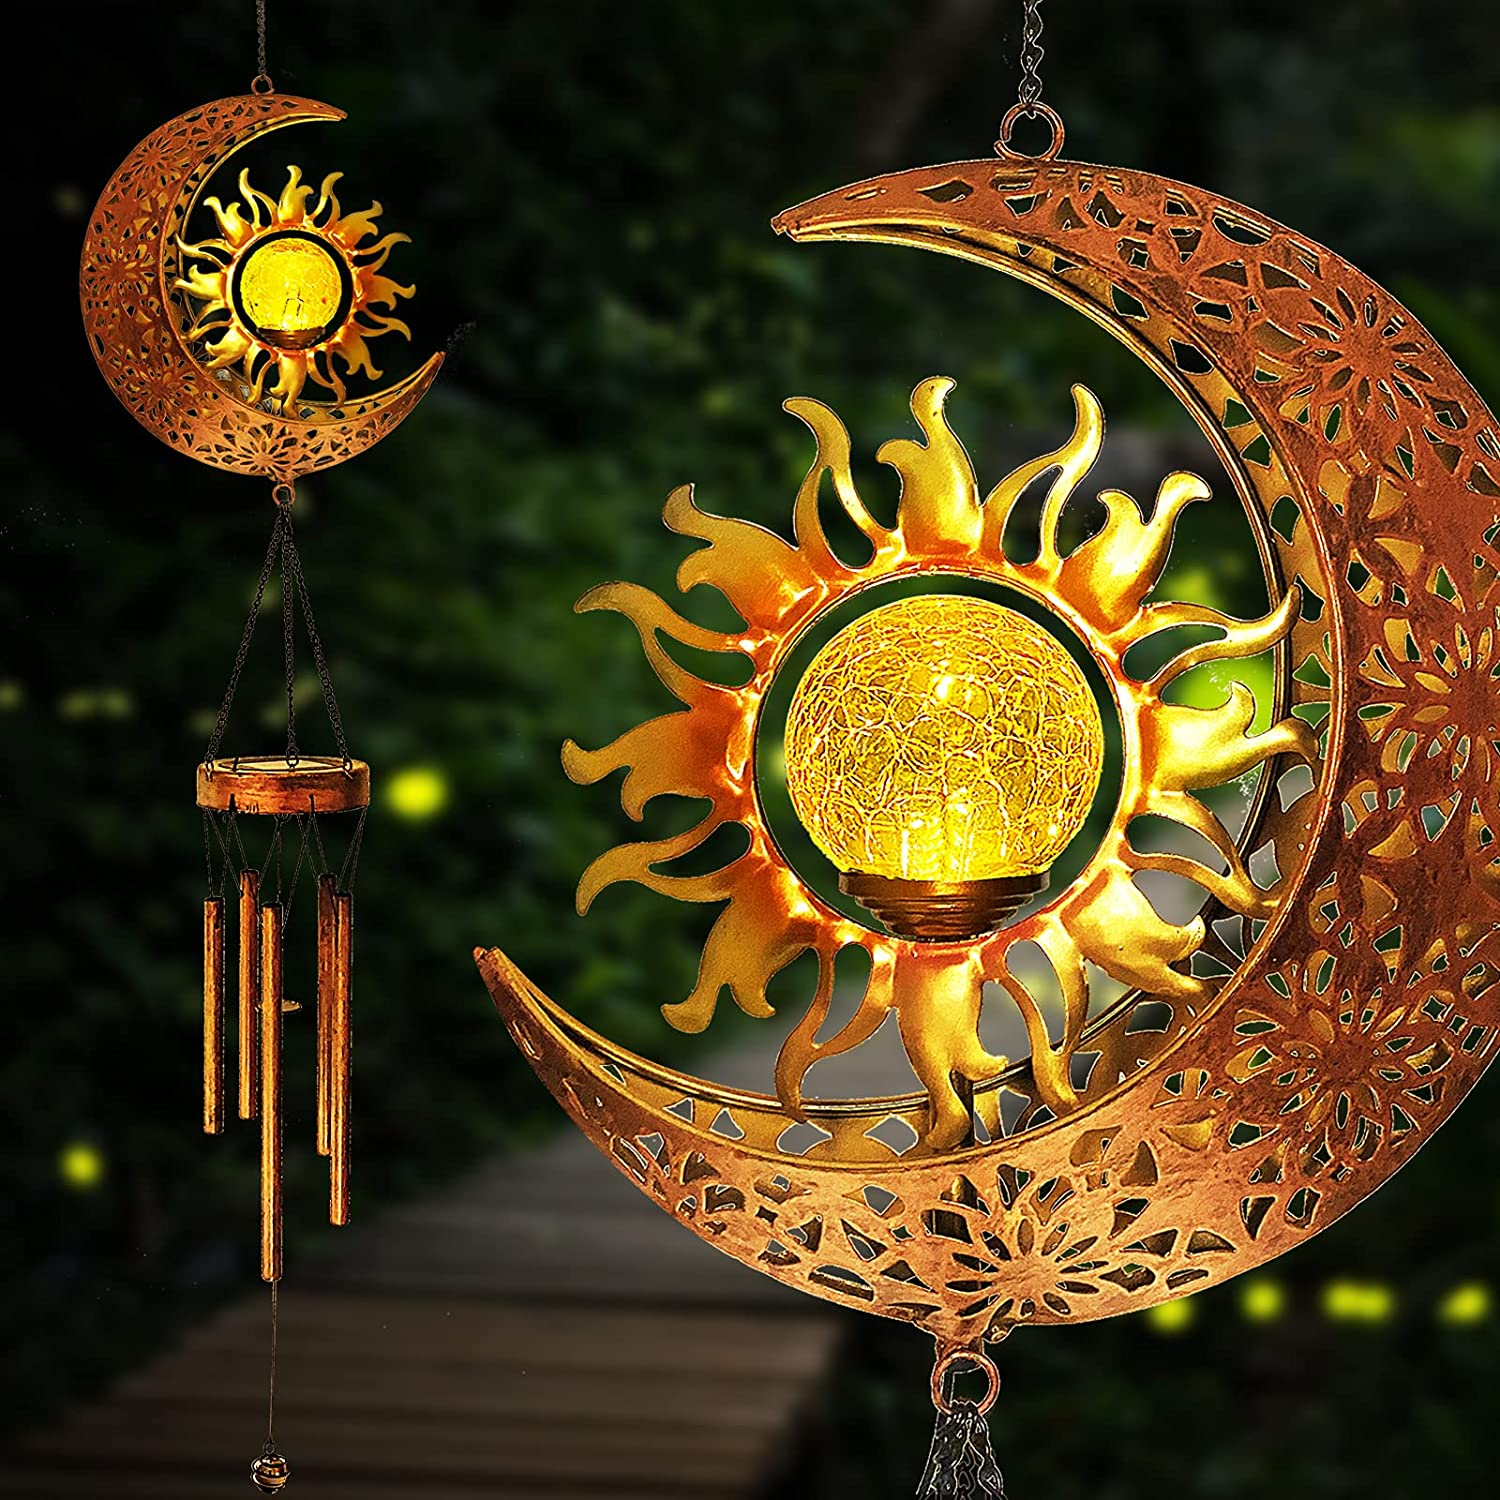 Solar Wind Chimes Outdoor Hanging-Metal Moon Sun Waterproof Wind Chime Lights with Crackle Glass Ball Warm LED Lights Moon Decor Gift for Garden Yard Patio (Moon)